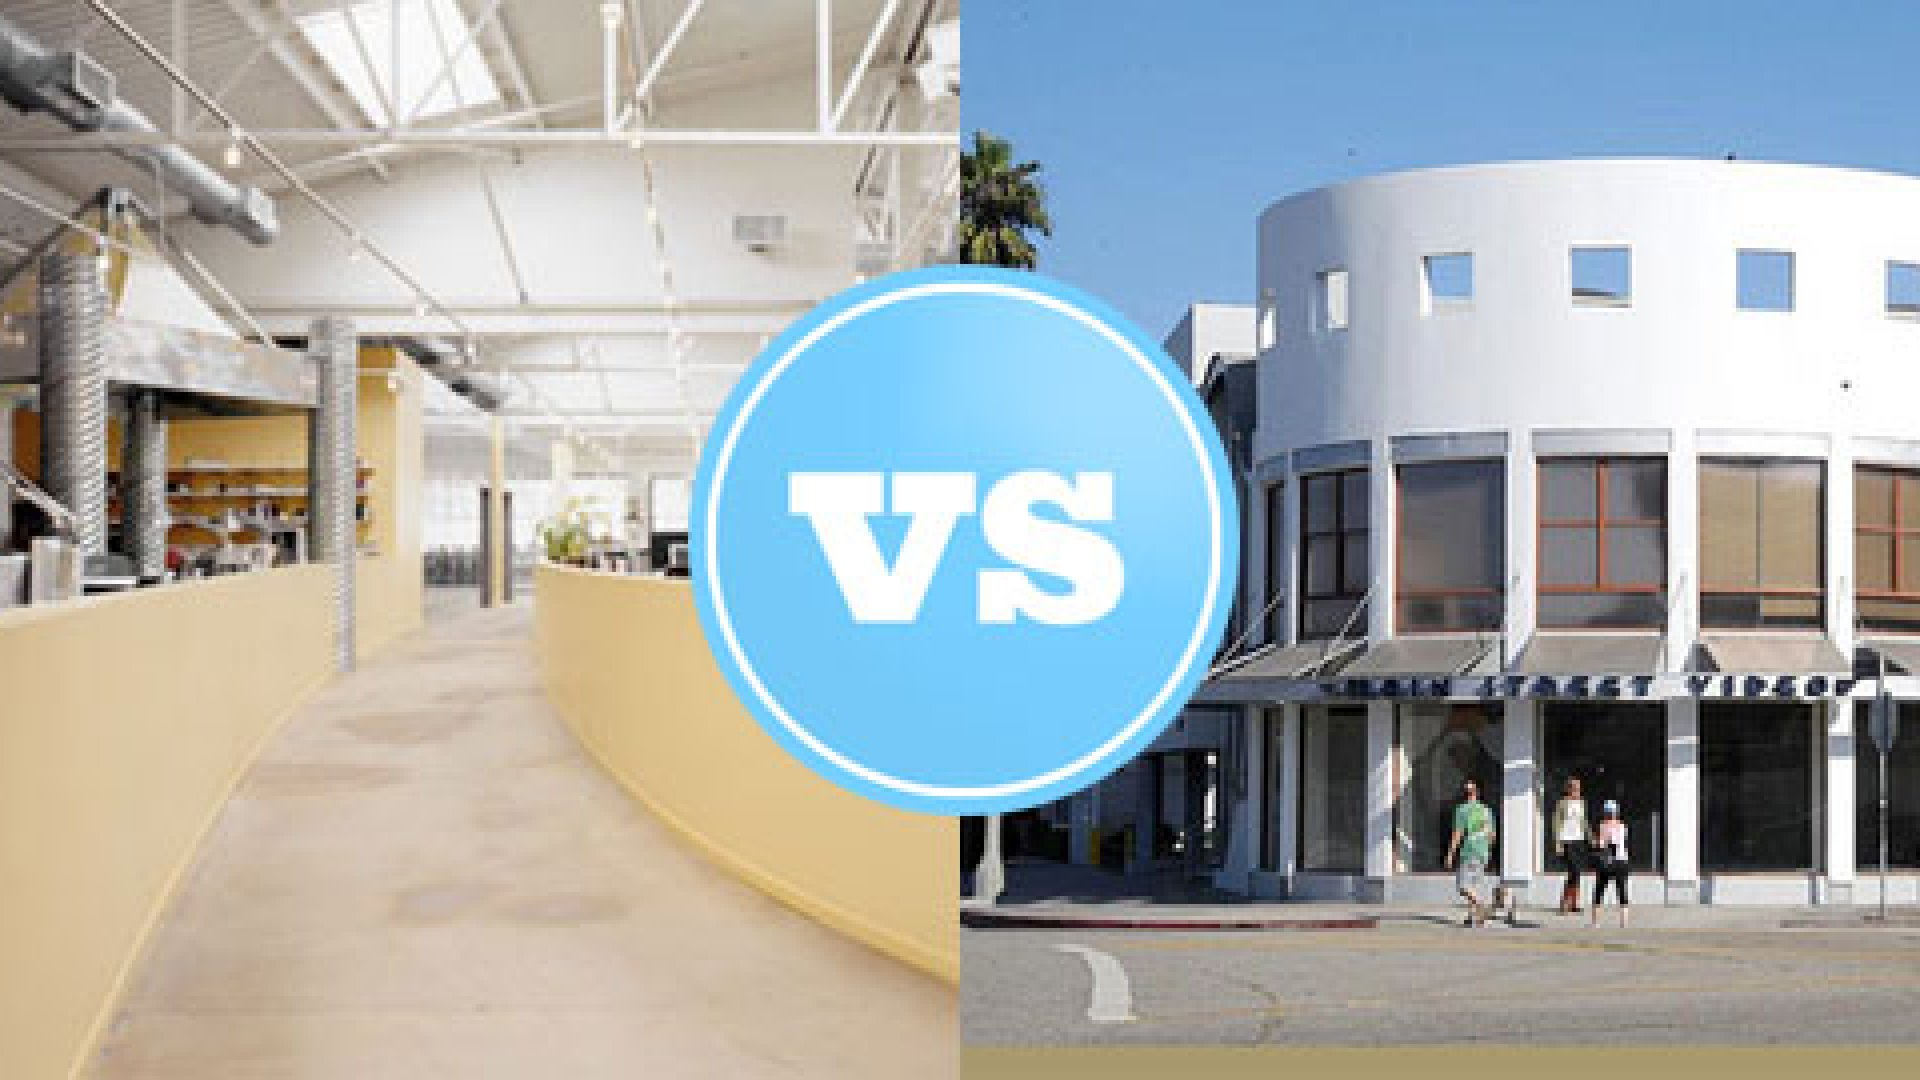 Pasadena, CA-based incubator IdeaLab on the left, Los Angeles-based accelerator Amplify on the right.